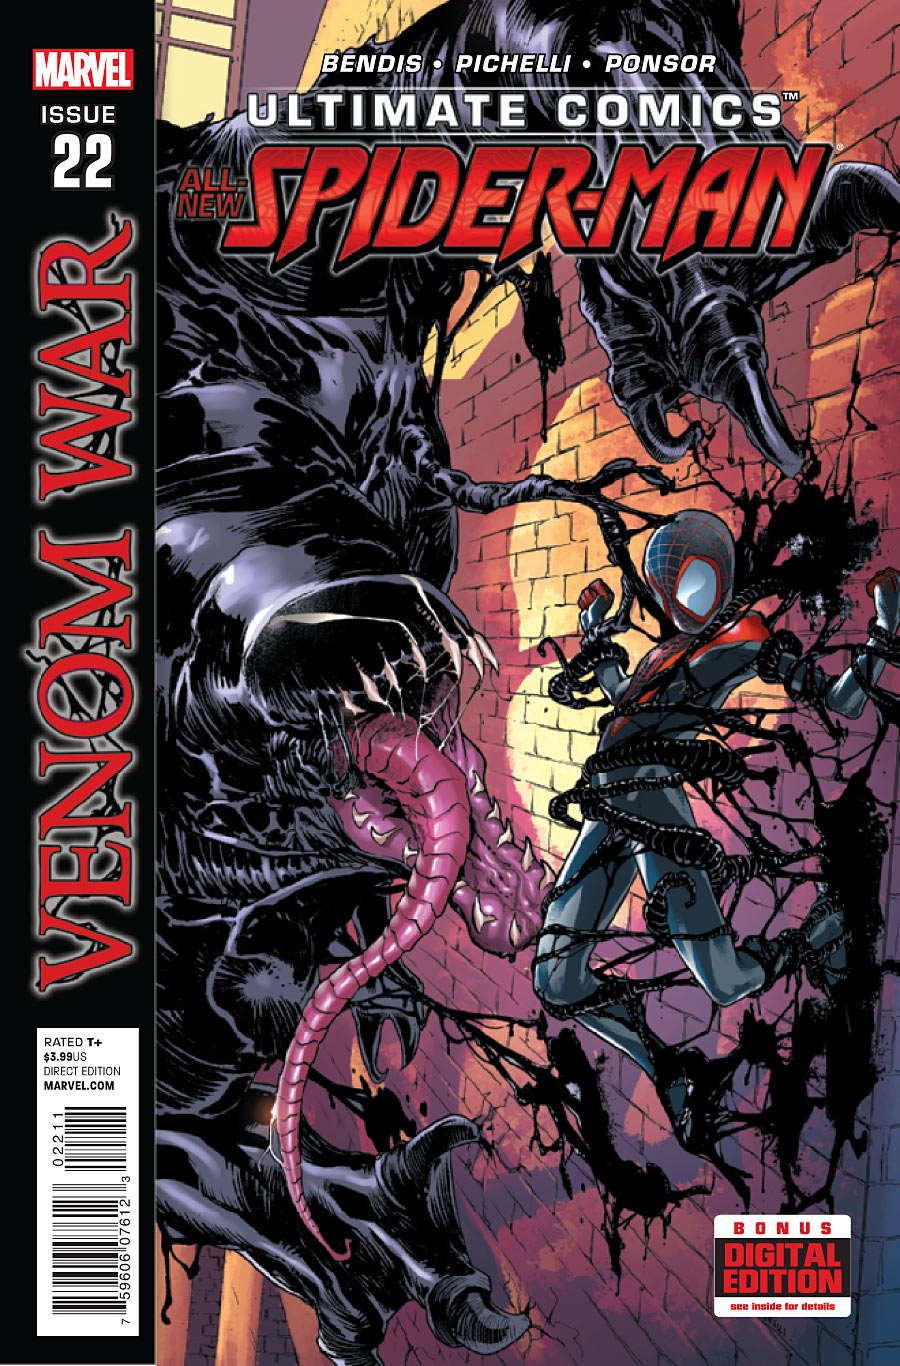 Ultimate Comics Spider-man 22 (1)